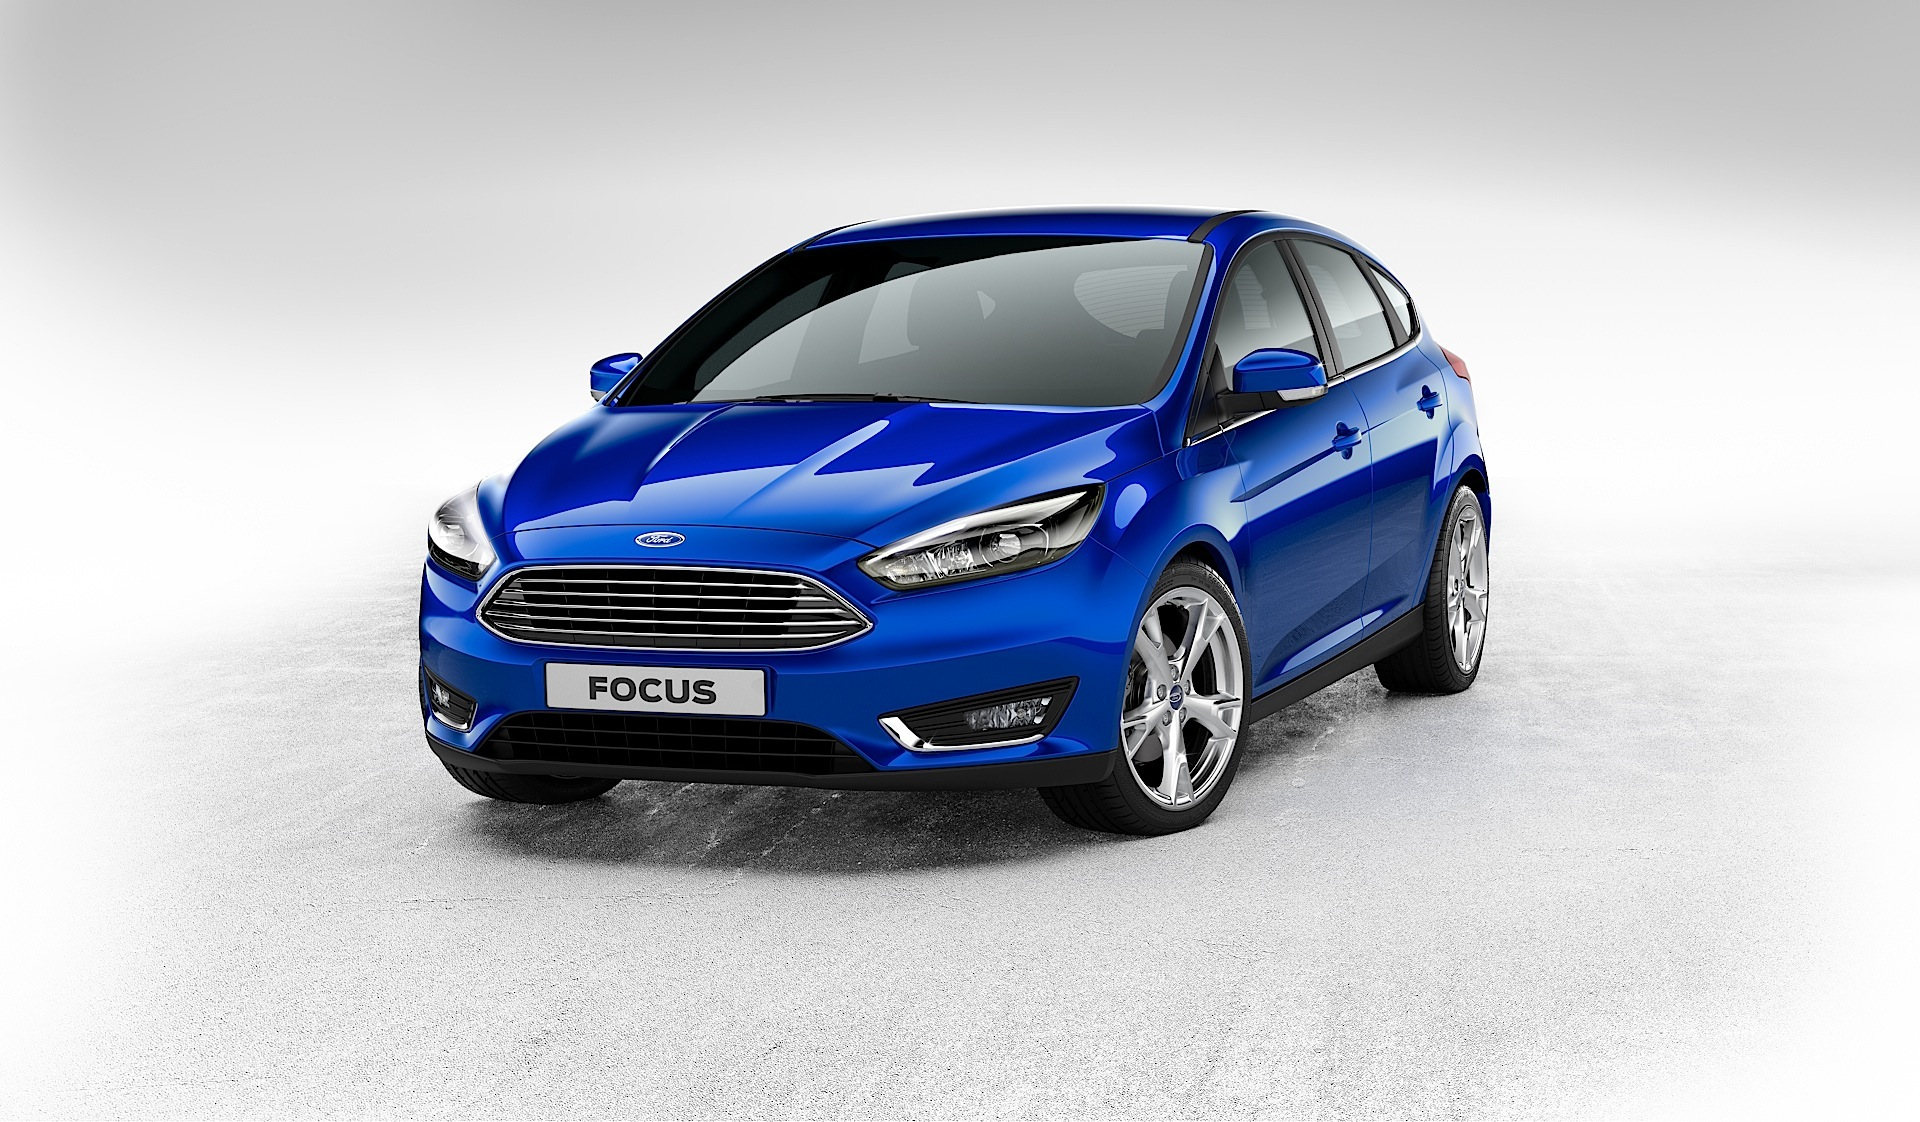 rs unleashed focus express pictures at howell auto ford last